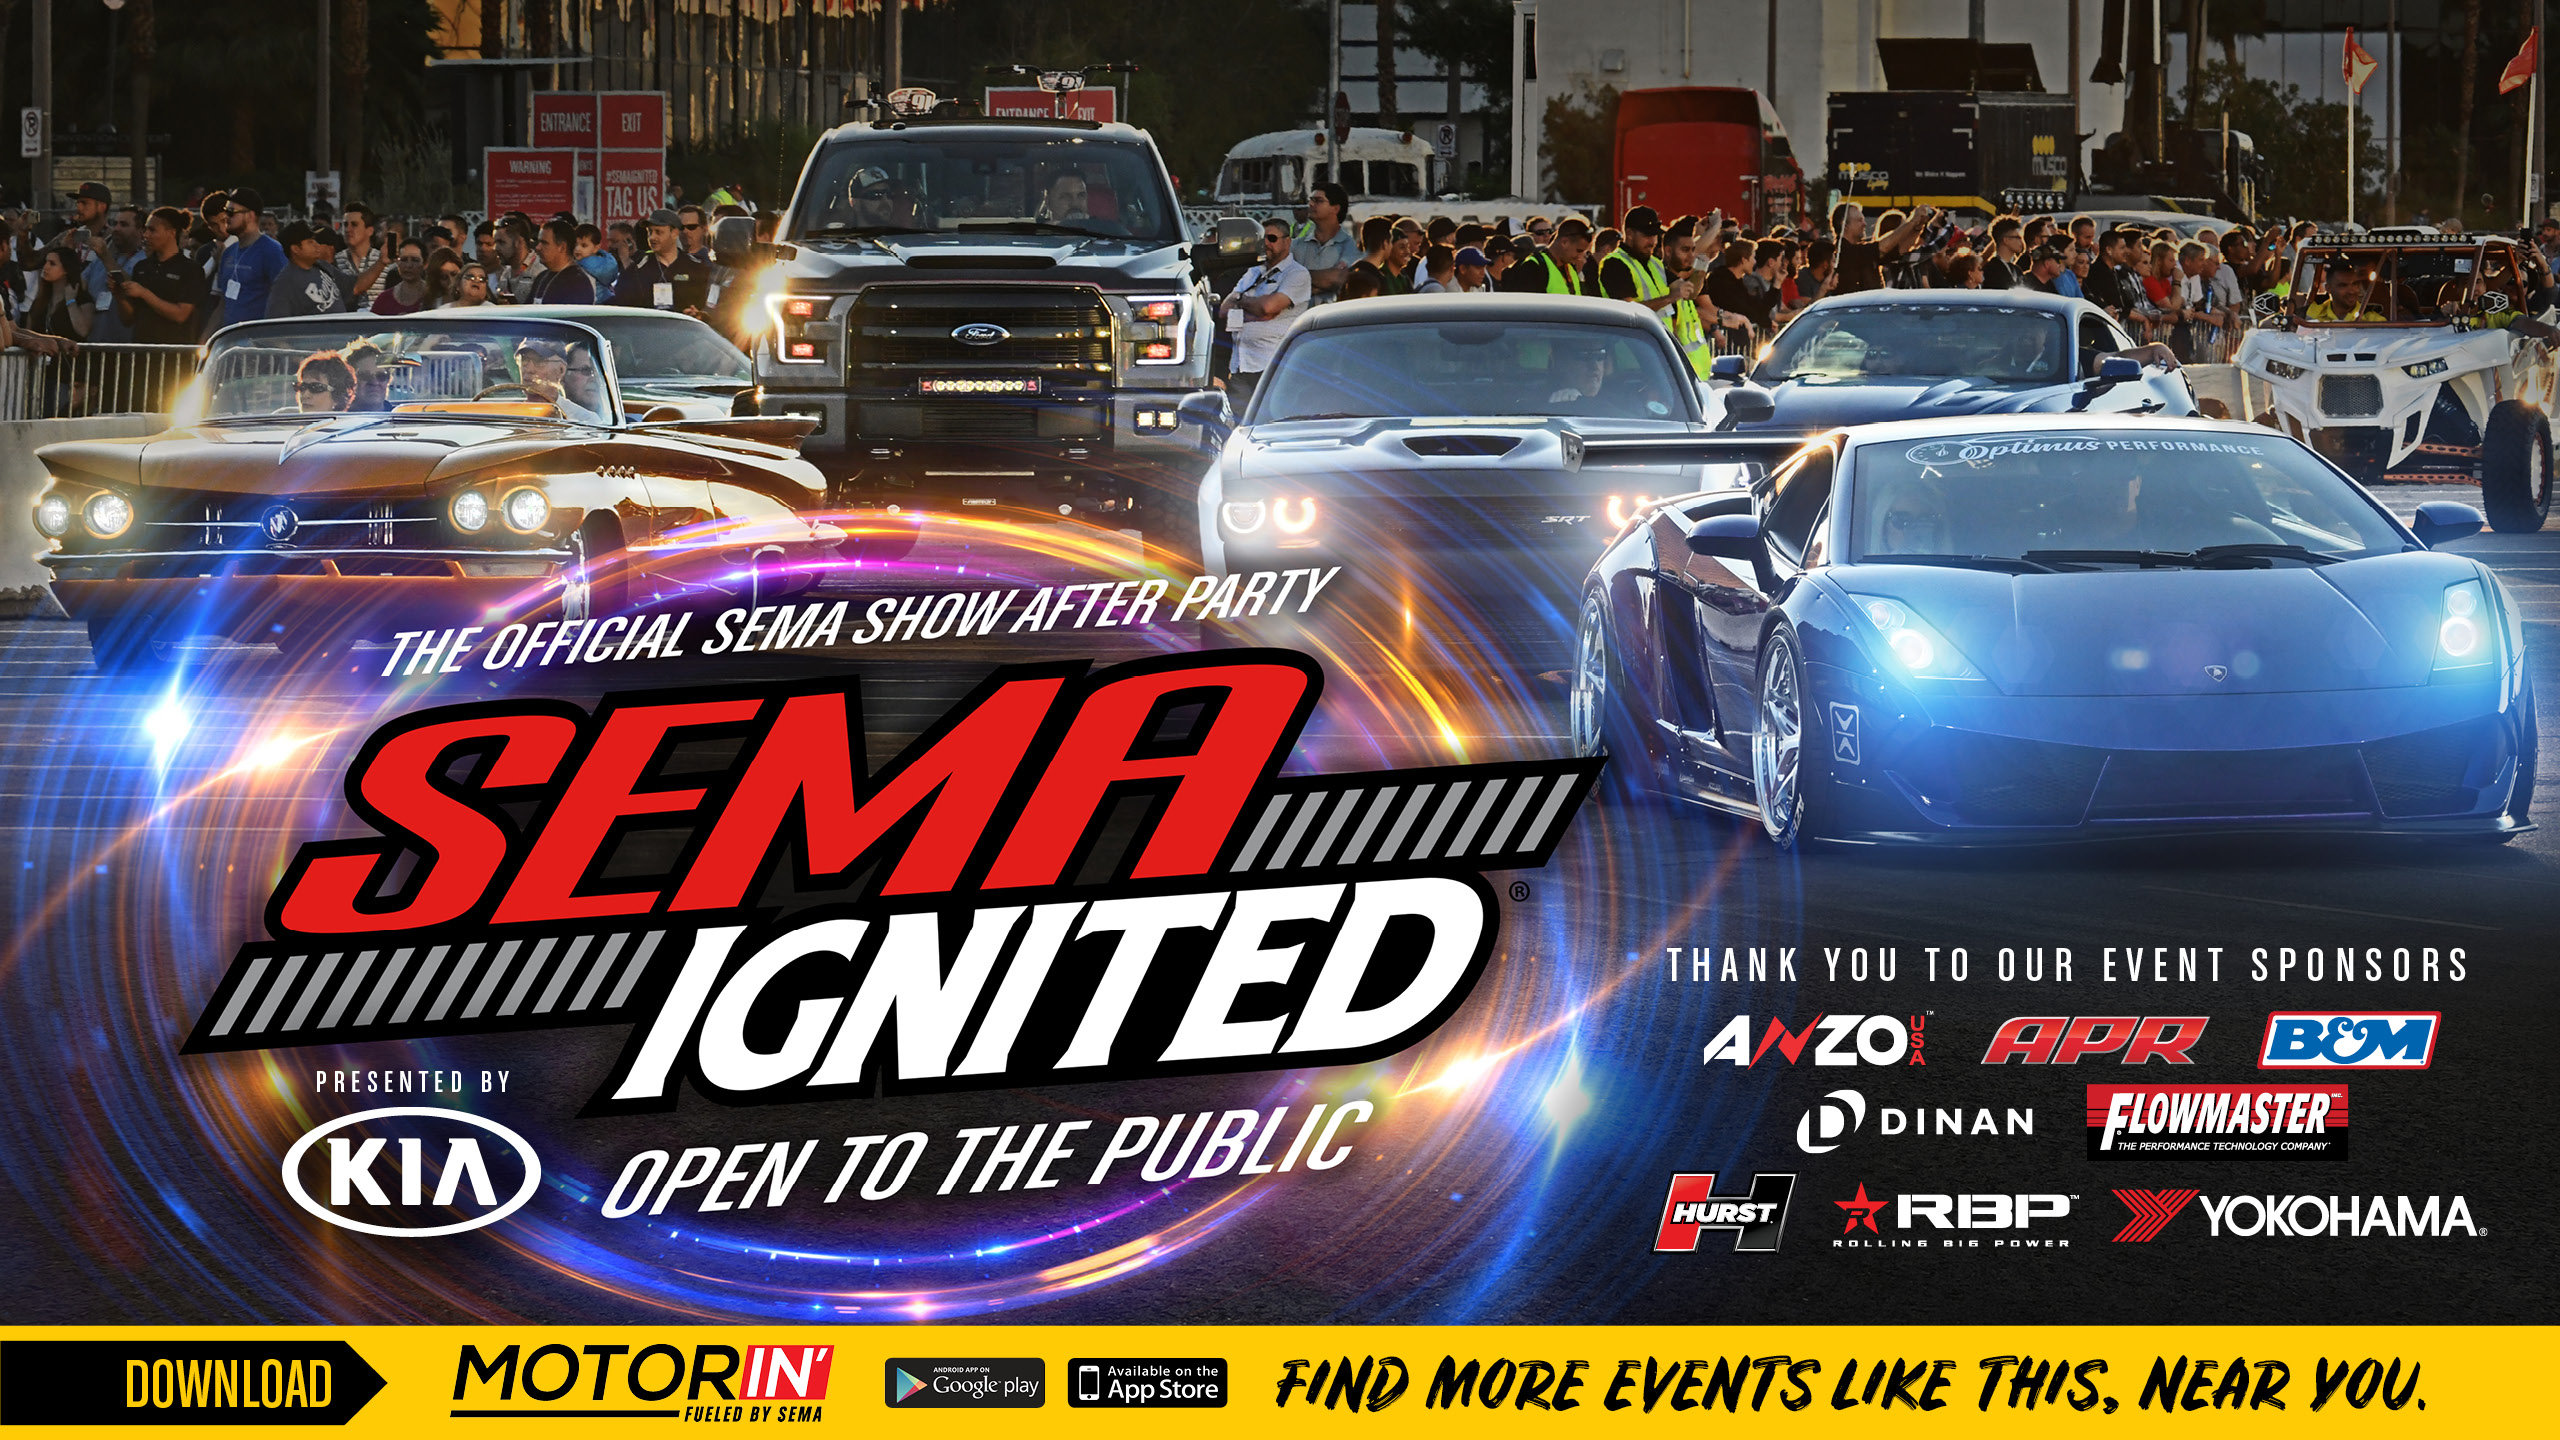 SEMA IGNITED The Official SEMA Show After Party Friday - Vw car show las vegas